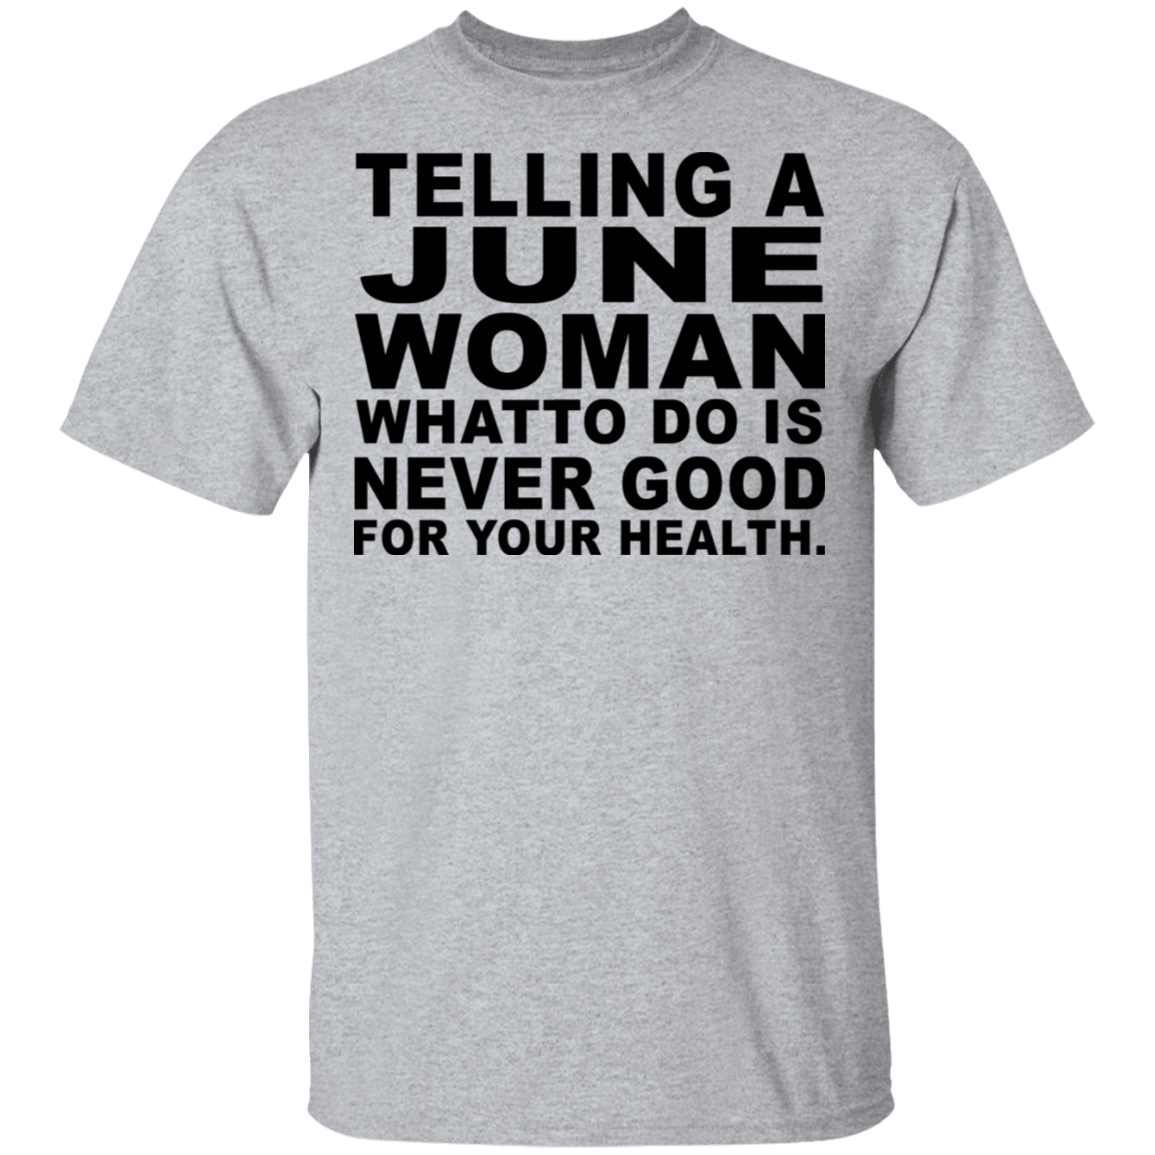 Telling A June Woman What To Do Is Never Good T-Shirts, Hoodies, Tank 22-115-79463223-254 - Tee Ript